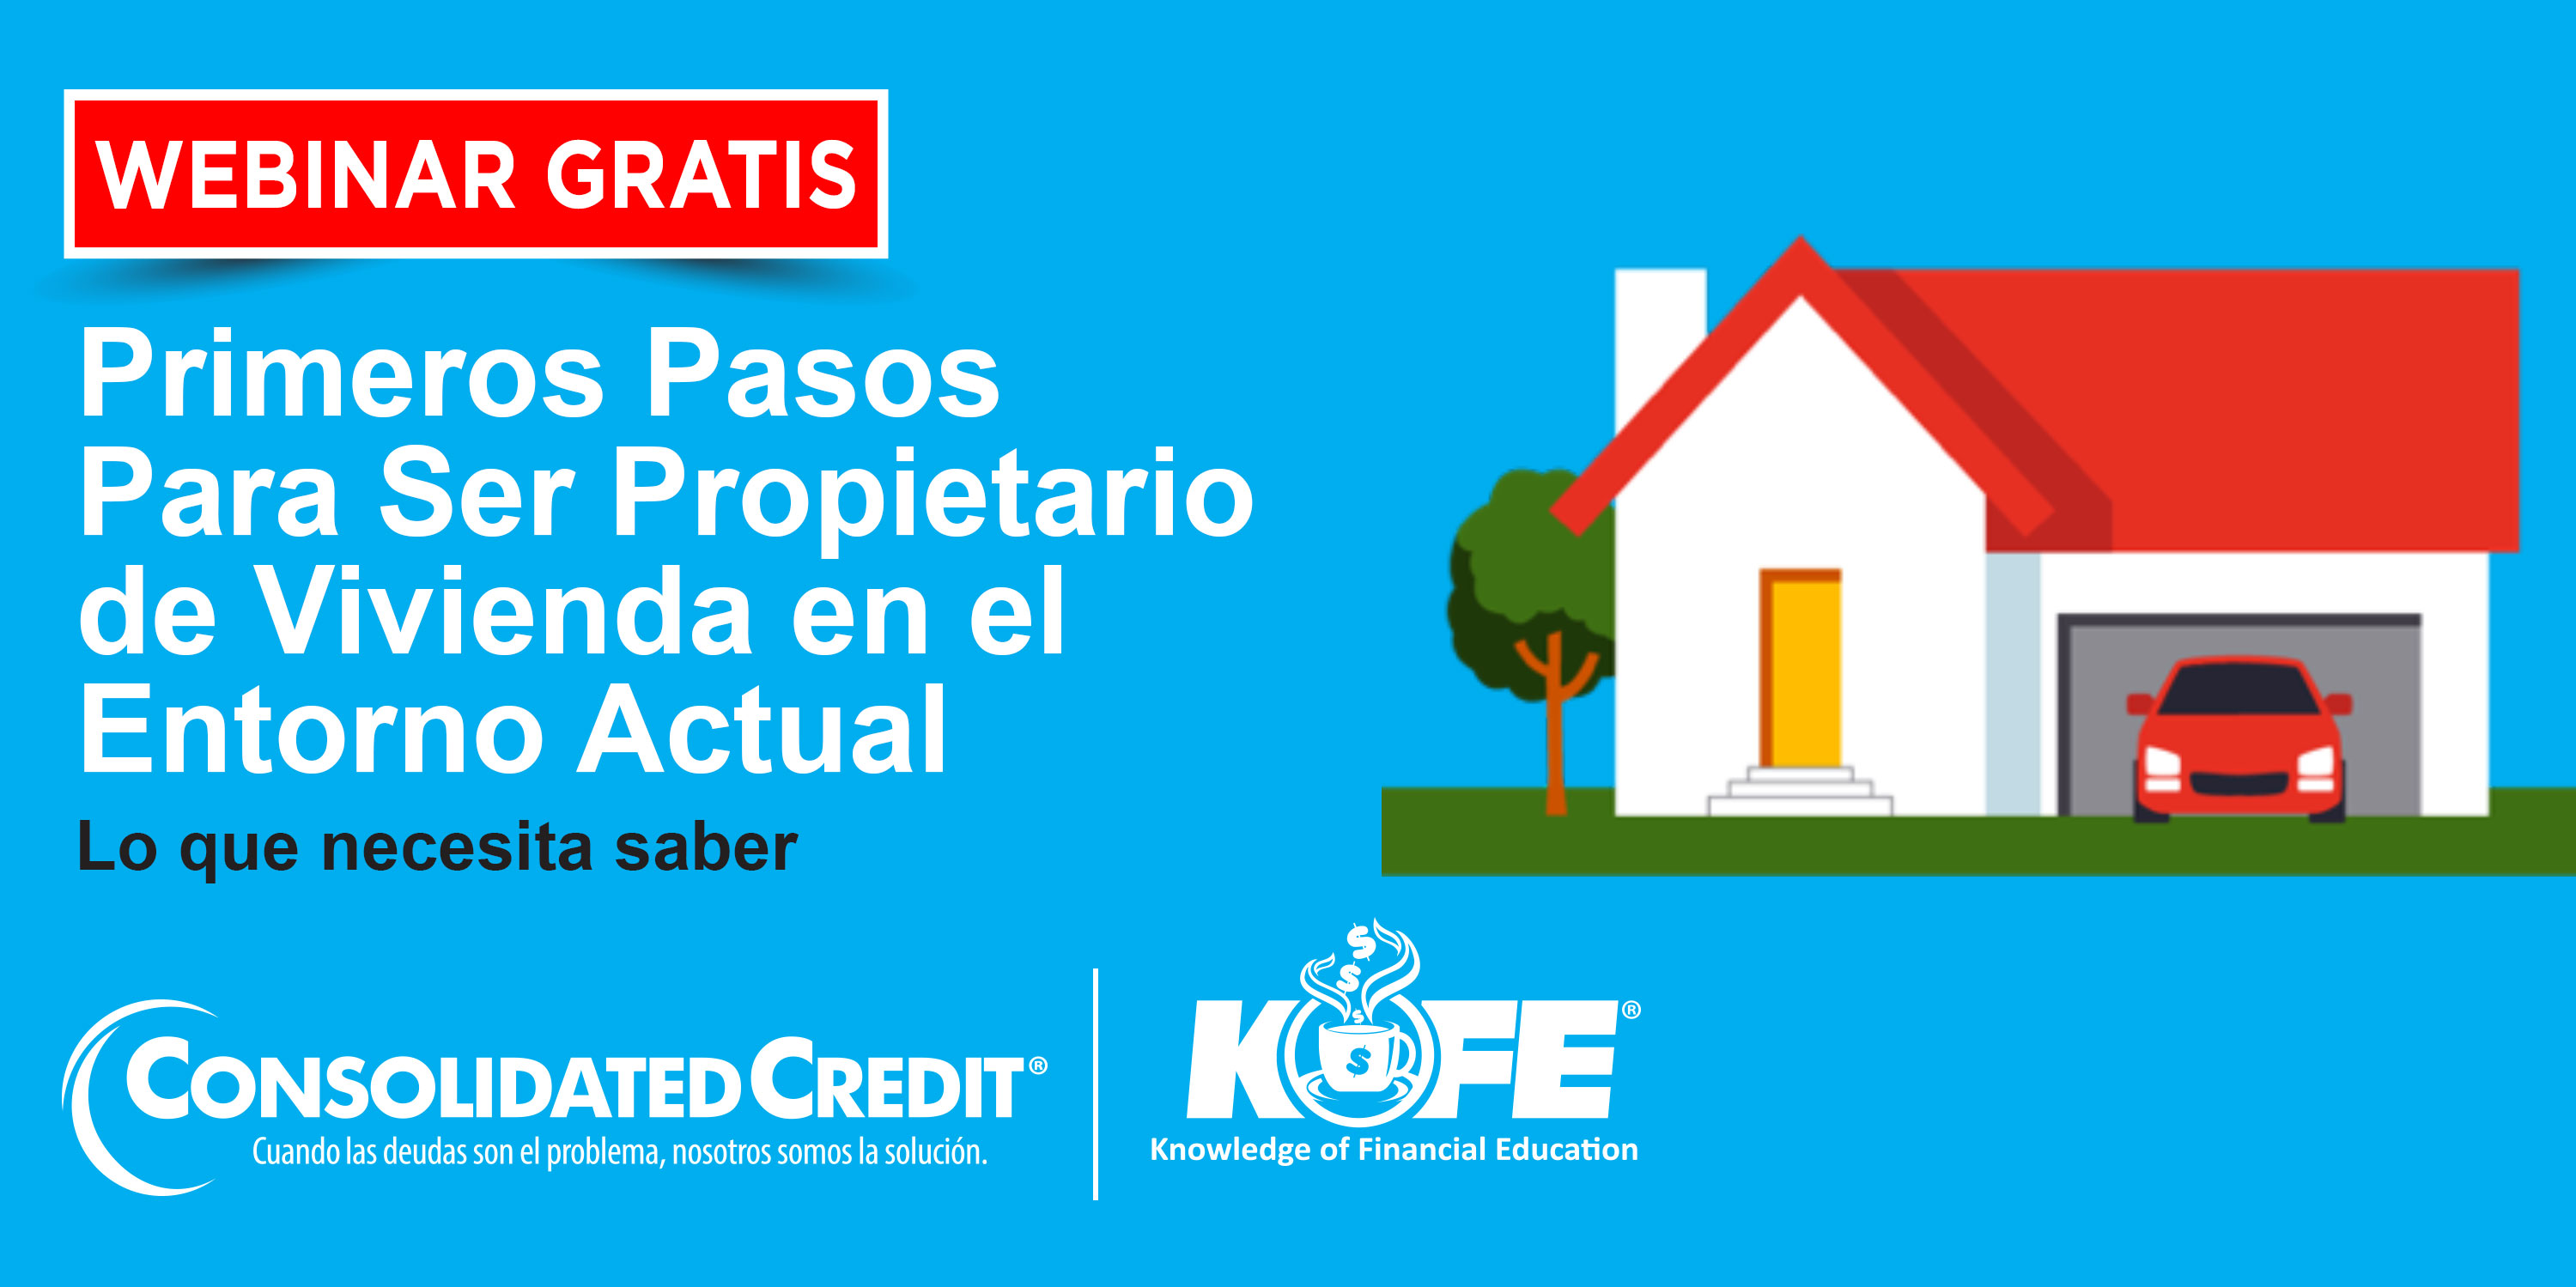 https://www.consolidatedcredit.org/es/wp-content/uploads/2020/07/Sep-9_1st-Step-to-Homeownership_CC-Kofe-Webinar_3000x1499_ES-2020.jpg